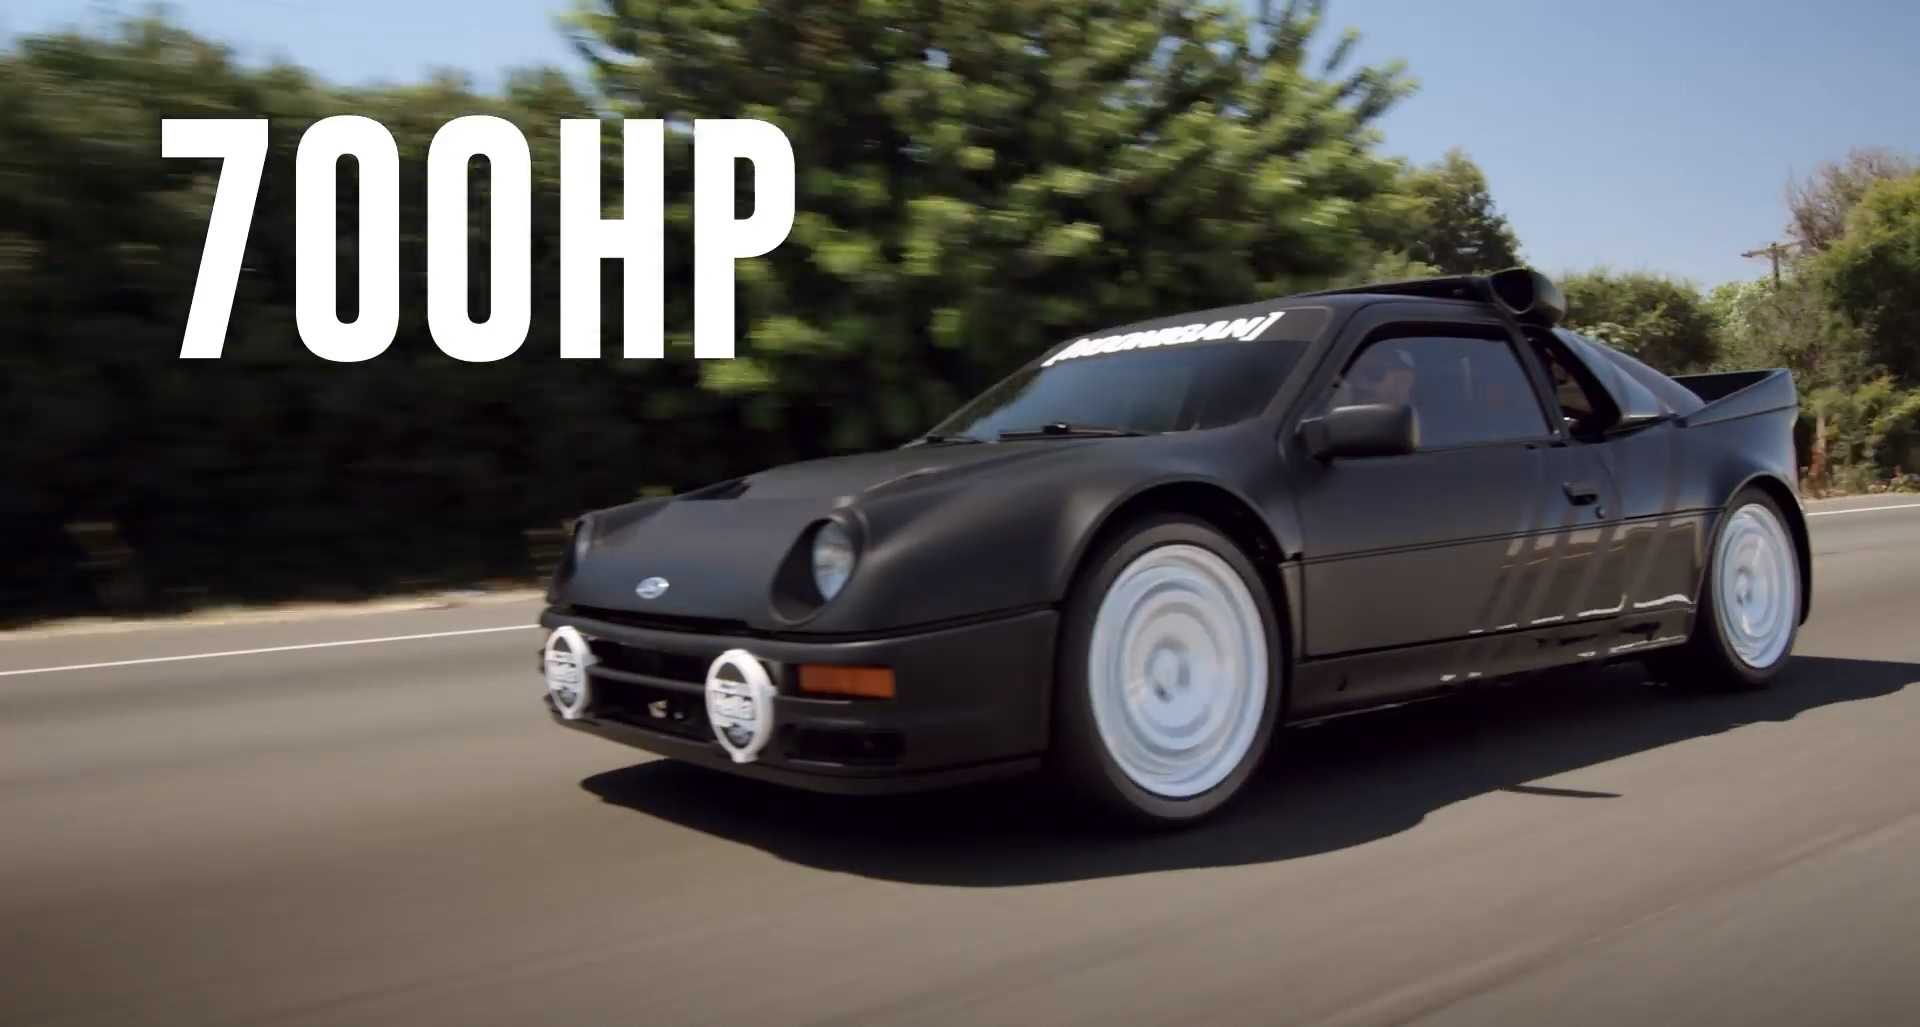 Ken block hits the street in awesome 700 horsepower ford rs200 top speed